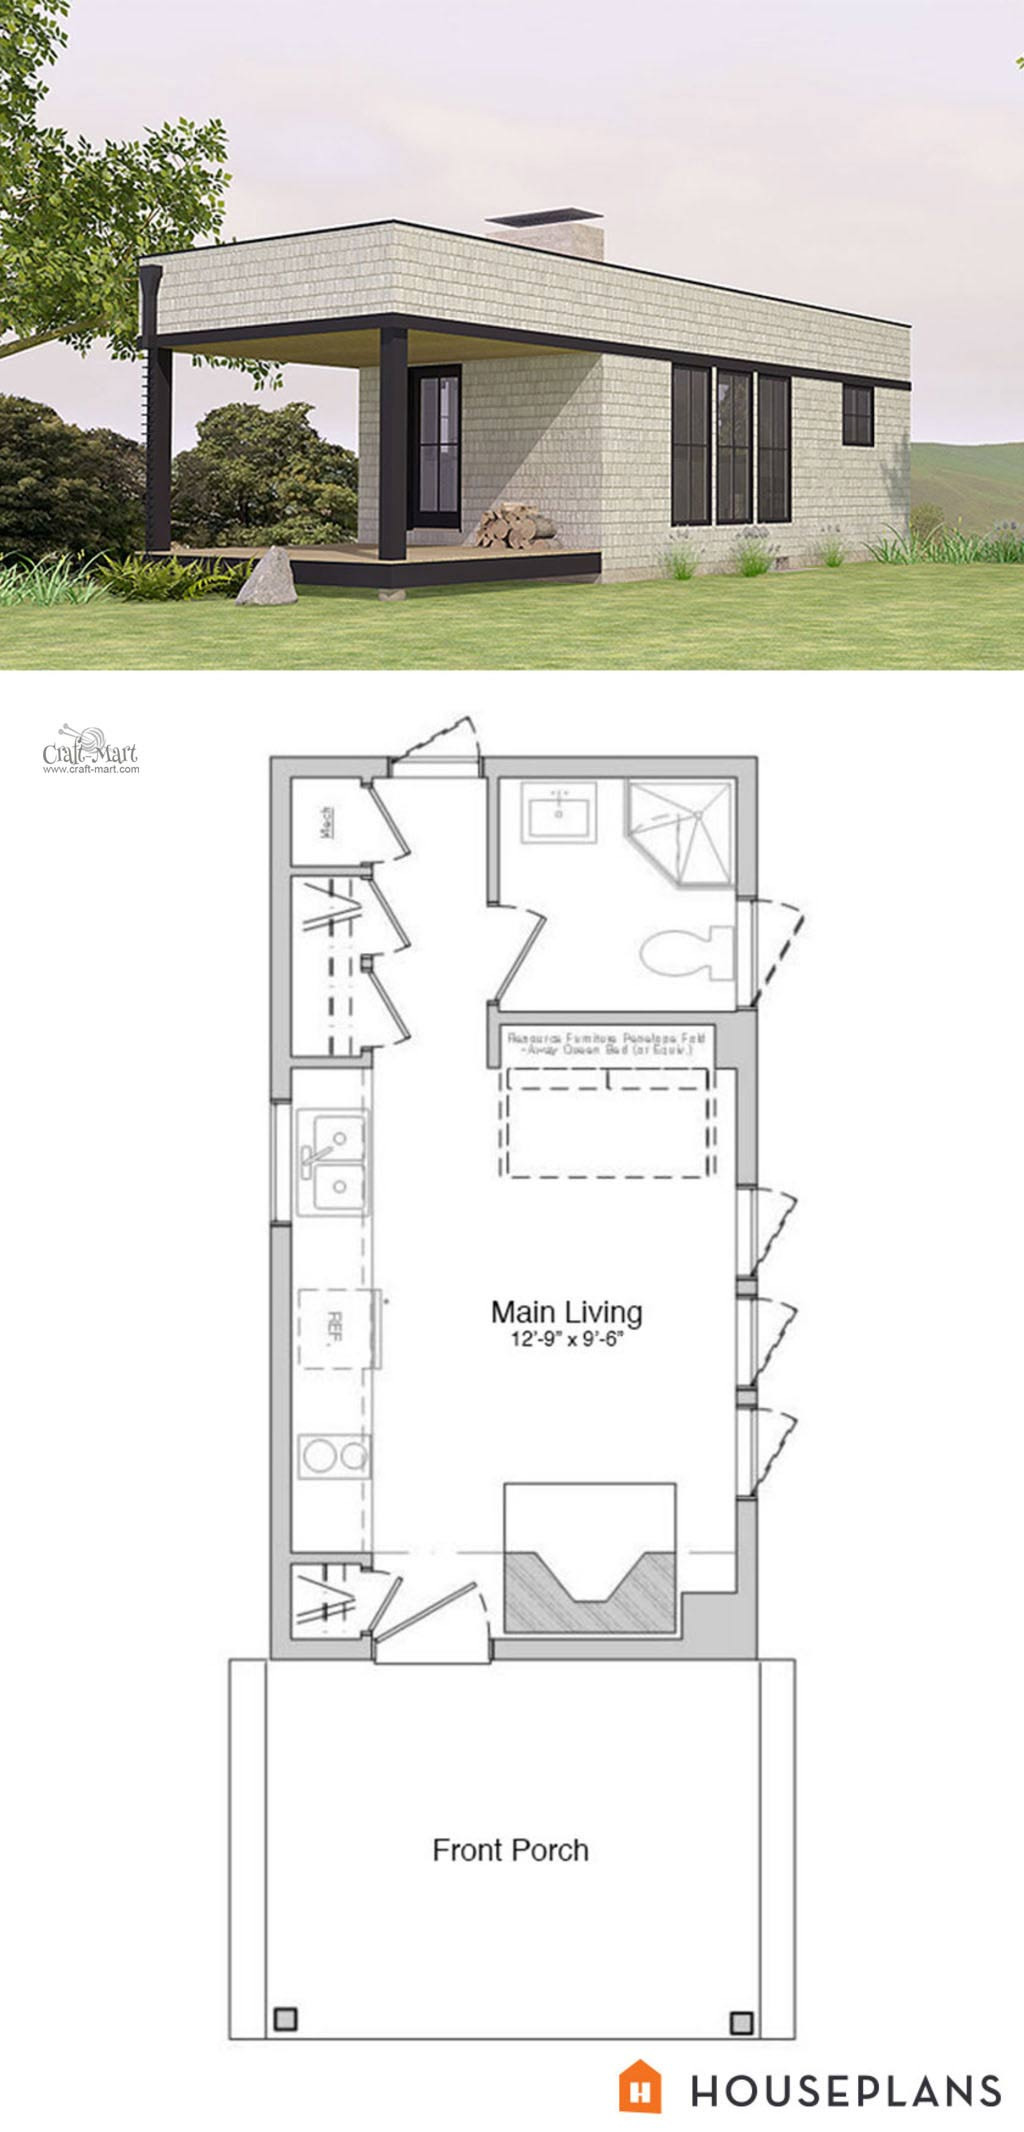 Building Plans for Small Houses Fresh 27 Adorable Free Tiny House Floor Plans Craft Mart